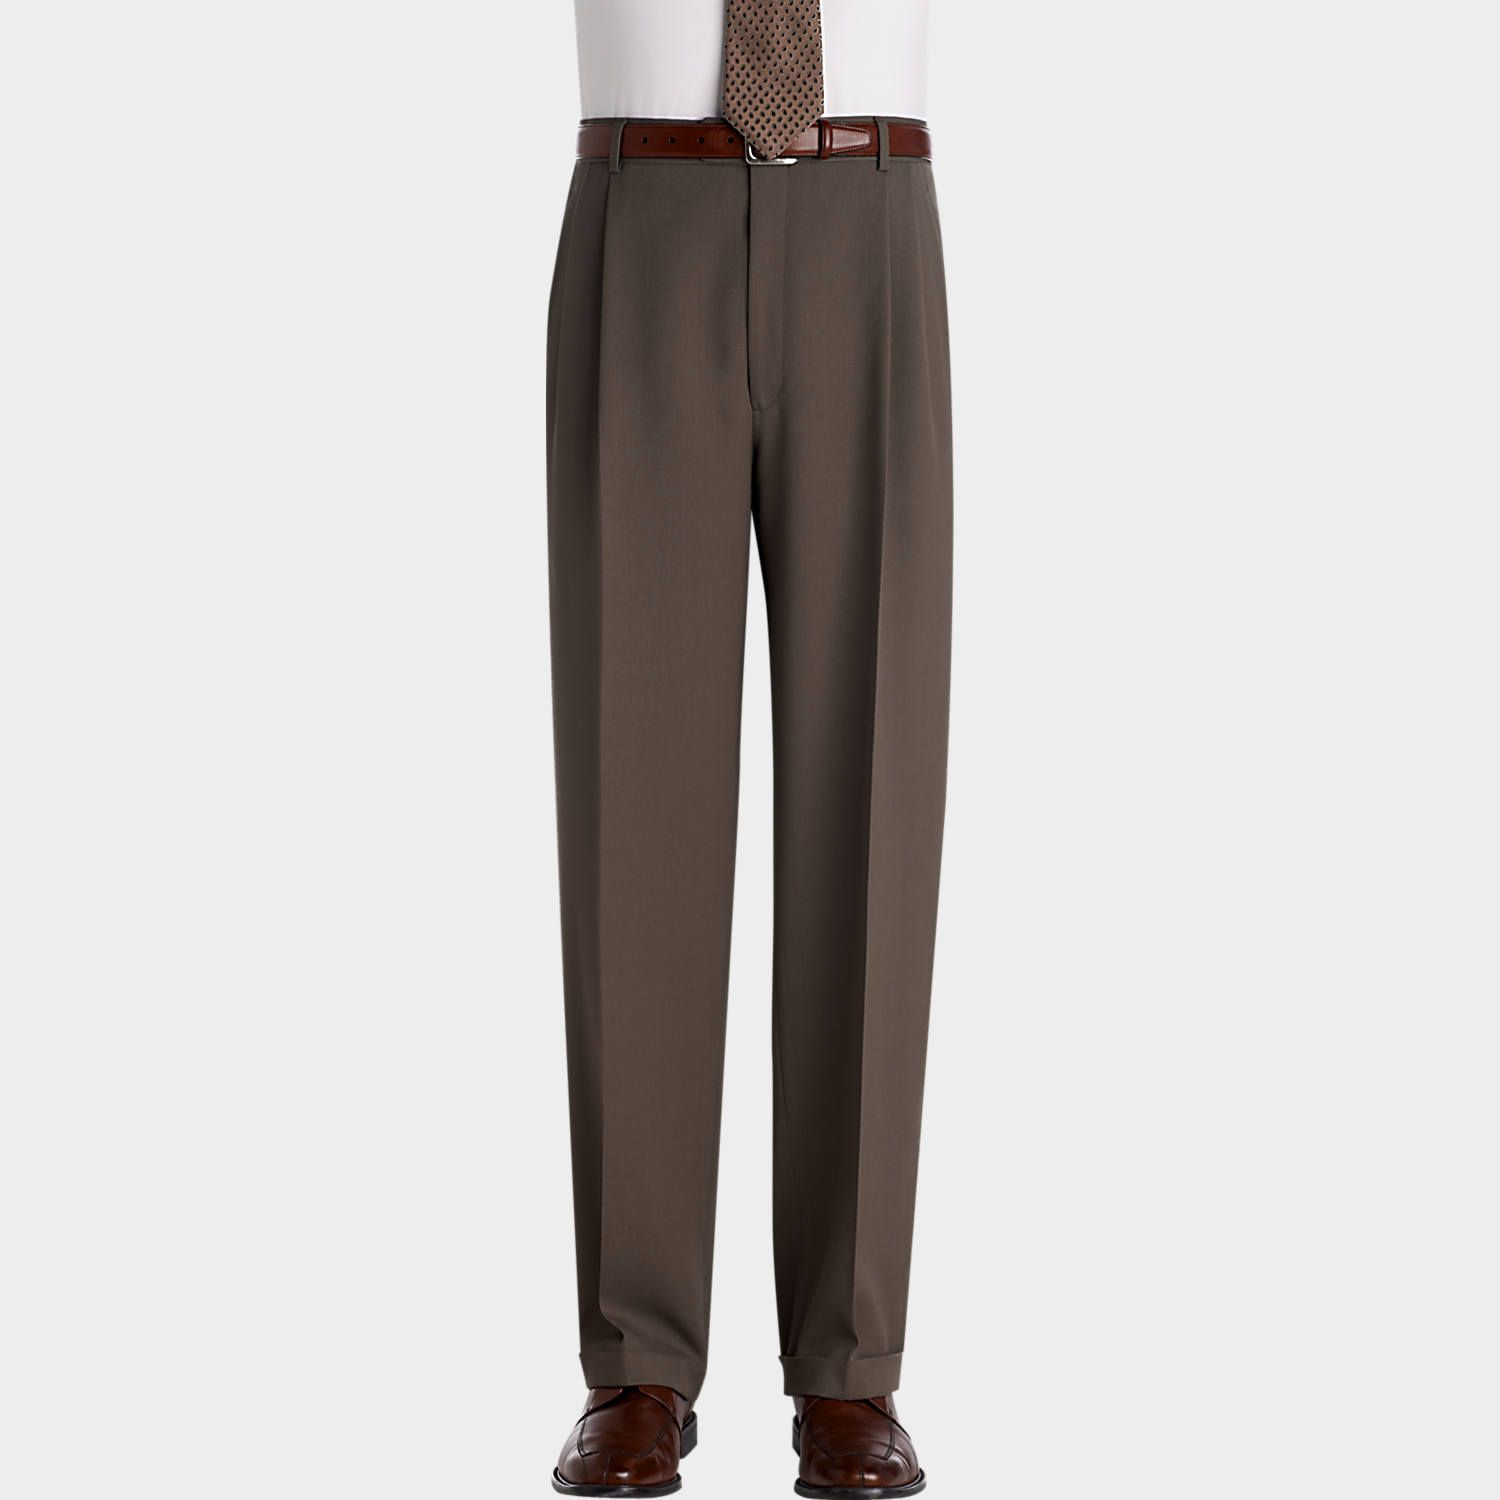 Buy a Joseph & Feiss Gold Classic Fit Dress Pants, Taupe online at Men's Wearhouse. See the latest styles of men's Dress Slacks. FREE Shipping on orders $99+.